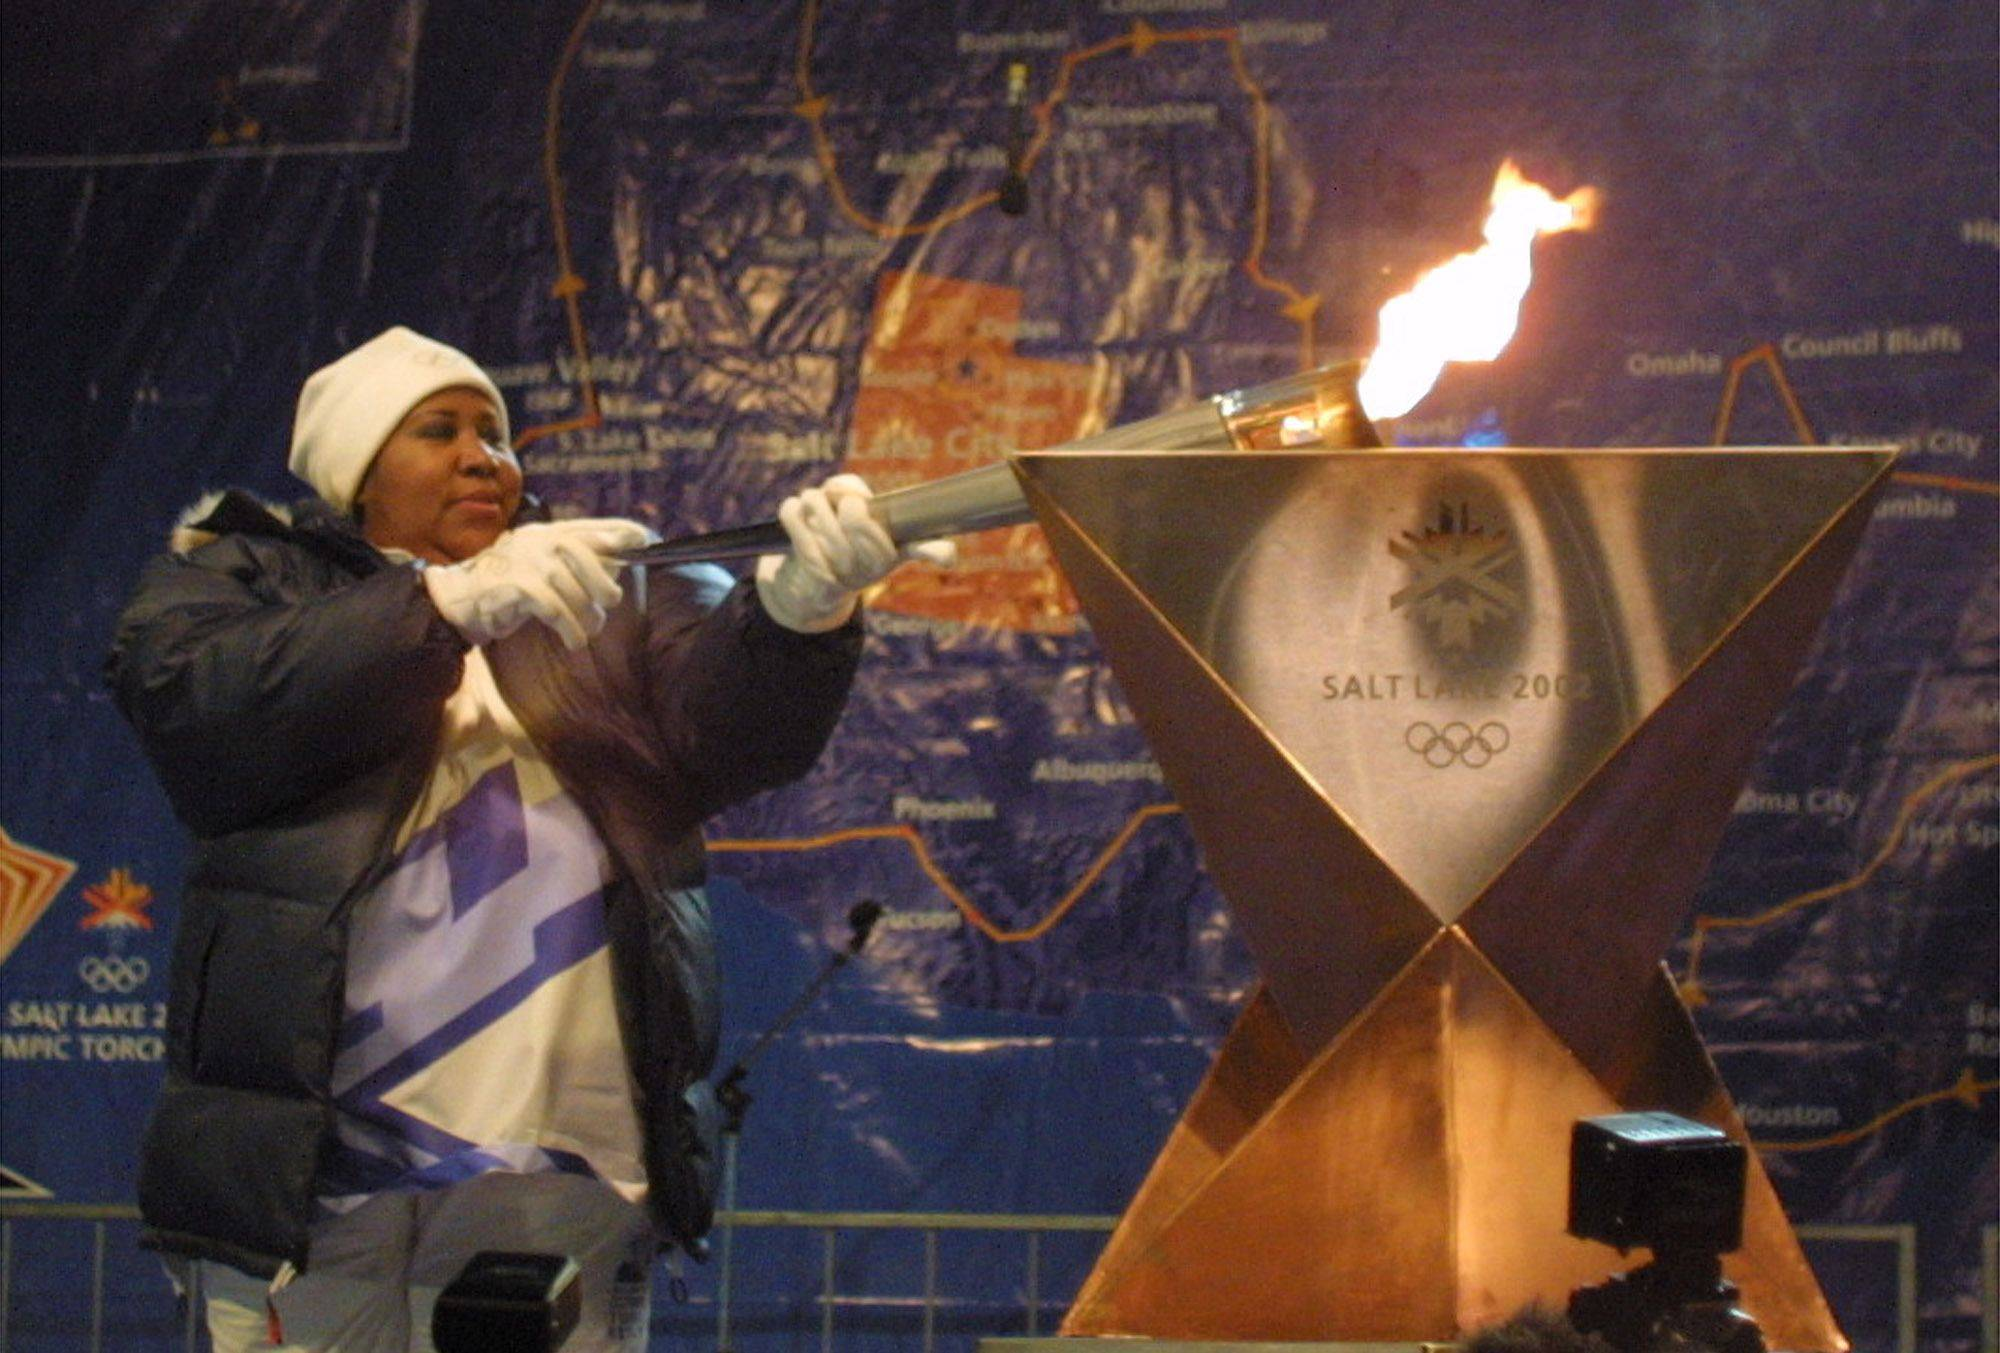 Singer Aretha Franklin lights a cauldron with the Olympic torch after completing her leg of the torch relay Sunday, Jan. 6, 2002, in Detroit.